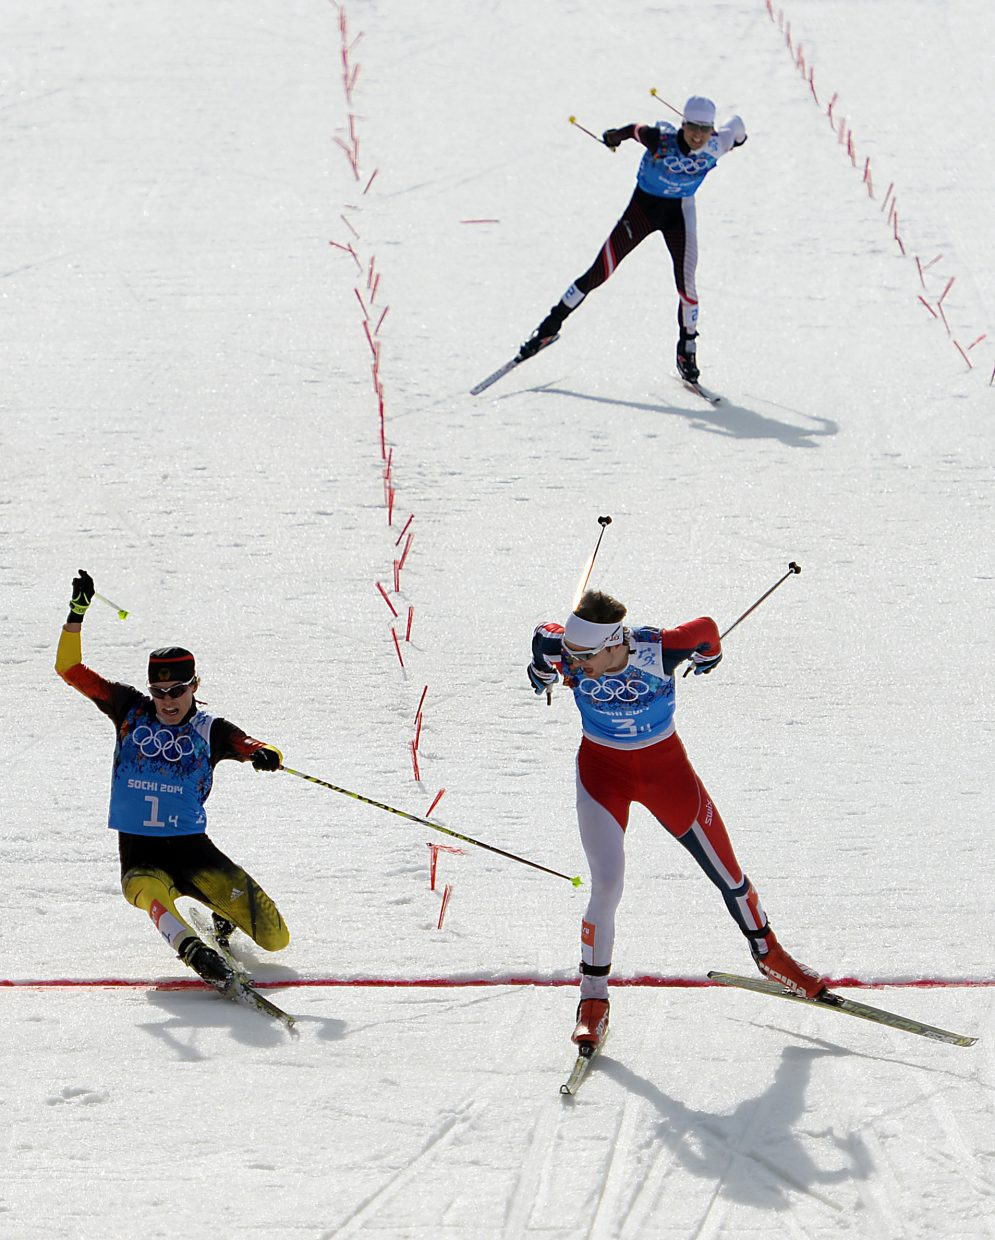 Norway's Joergen Graabak skis across the finish line for a gold medal in the Nordic combined team relay event, ahead of a diving Fabian Riessle of Germany. It was Graabak's second gold medal in Nordic combined at the 2014 Winter Olympics.